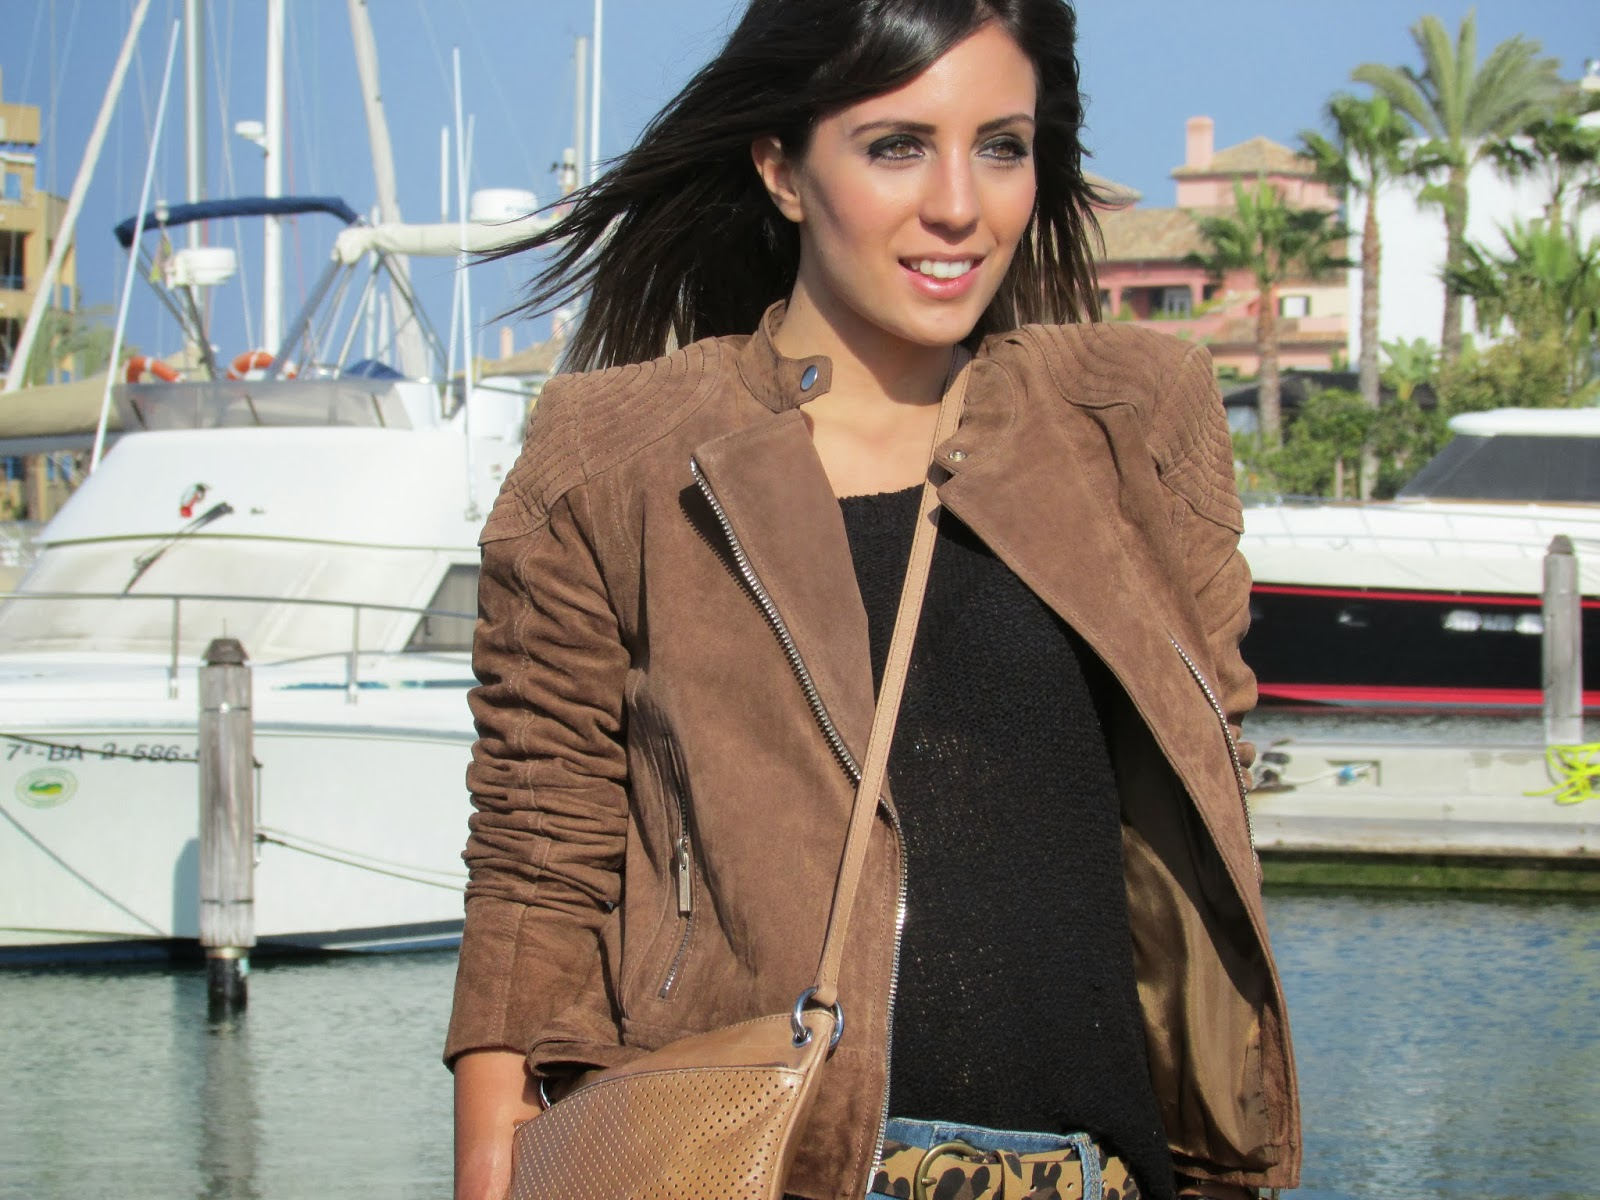 street style cristina style blogger malagueña fashion blogger malaga tendencias moda zara mango gorgeous lovely outfit looks style fashion inspiration